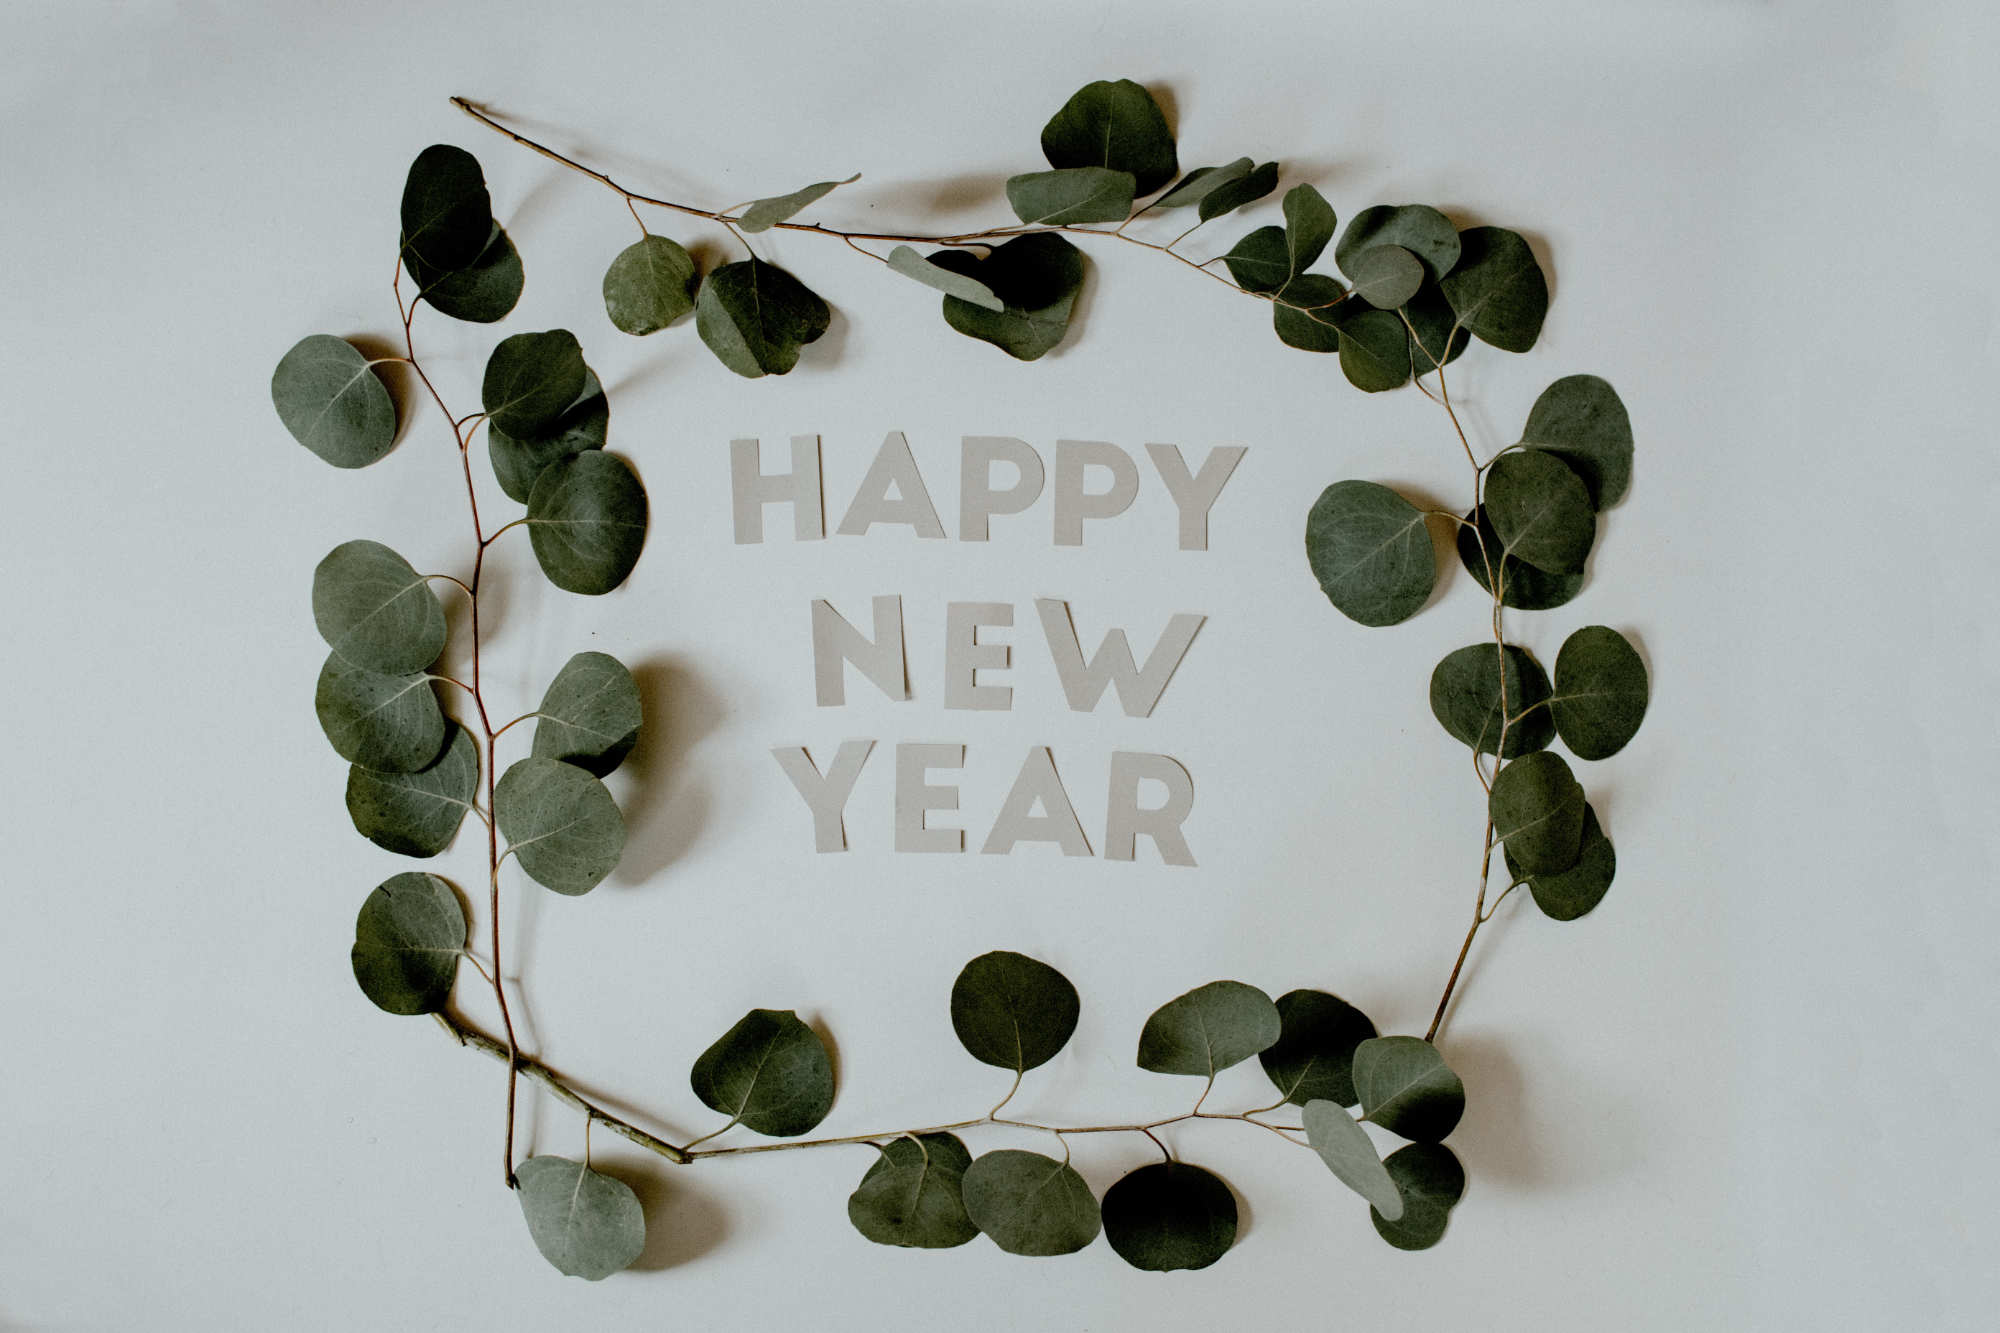 https://www.contentbloom.com/wp-content/uploads/2020/01/Happy-new-year-from-Content-Bloom-2.jpg